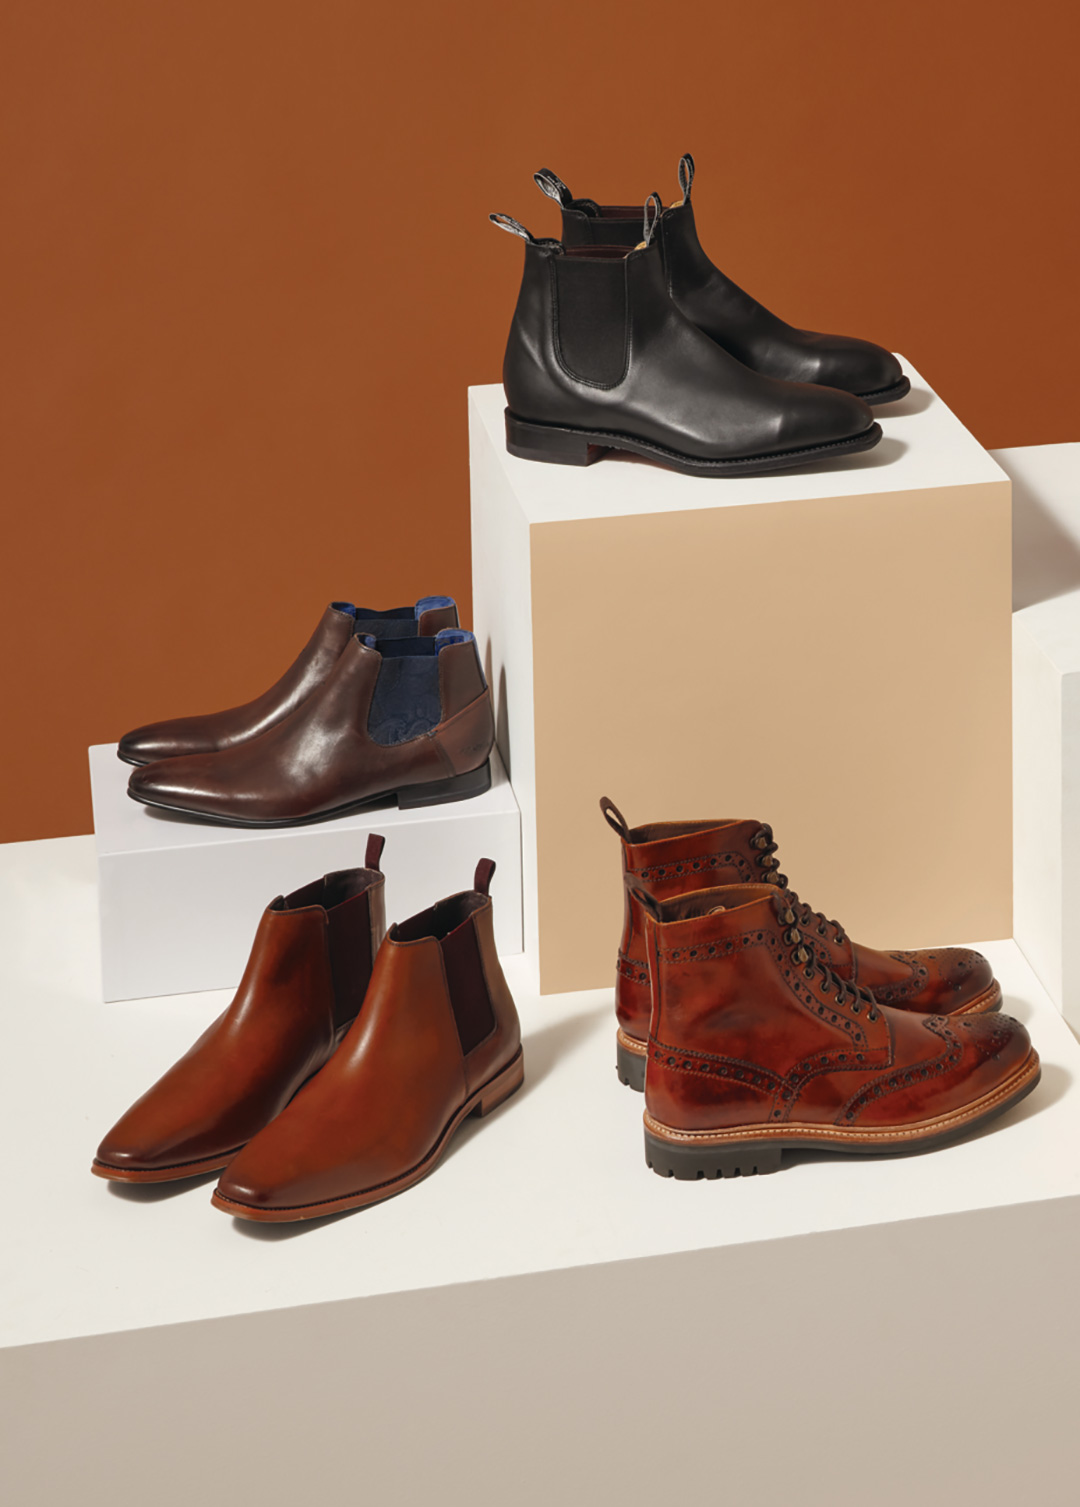 4 Easy Ways to Keep Your Leather Boots Pristine